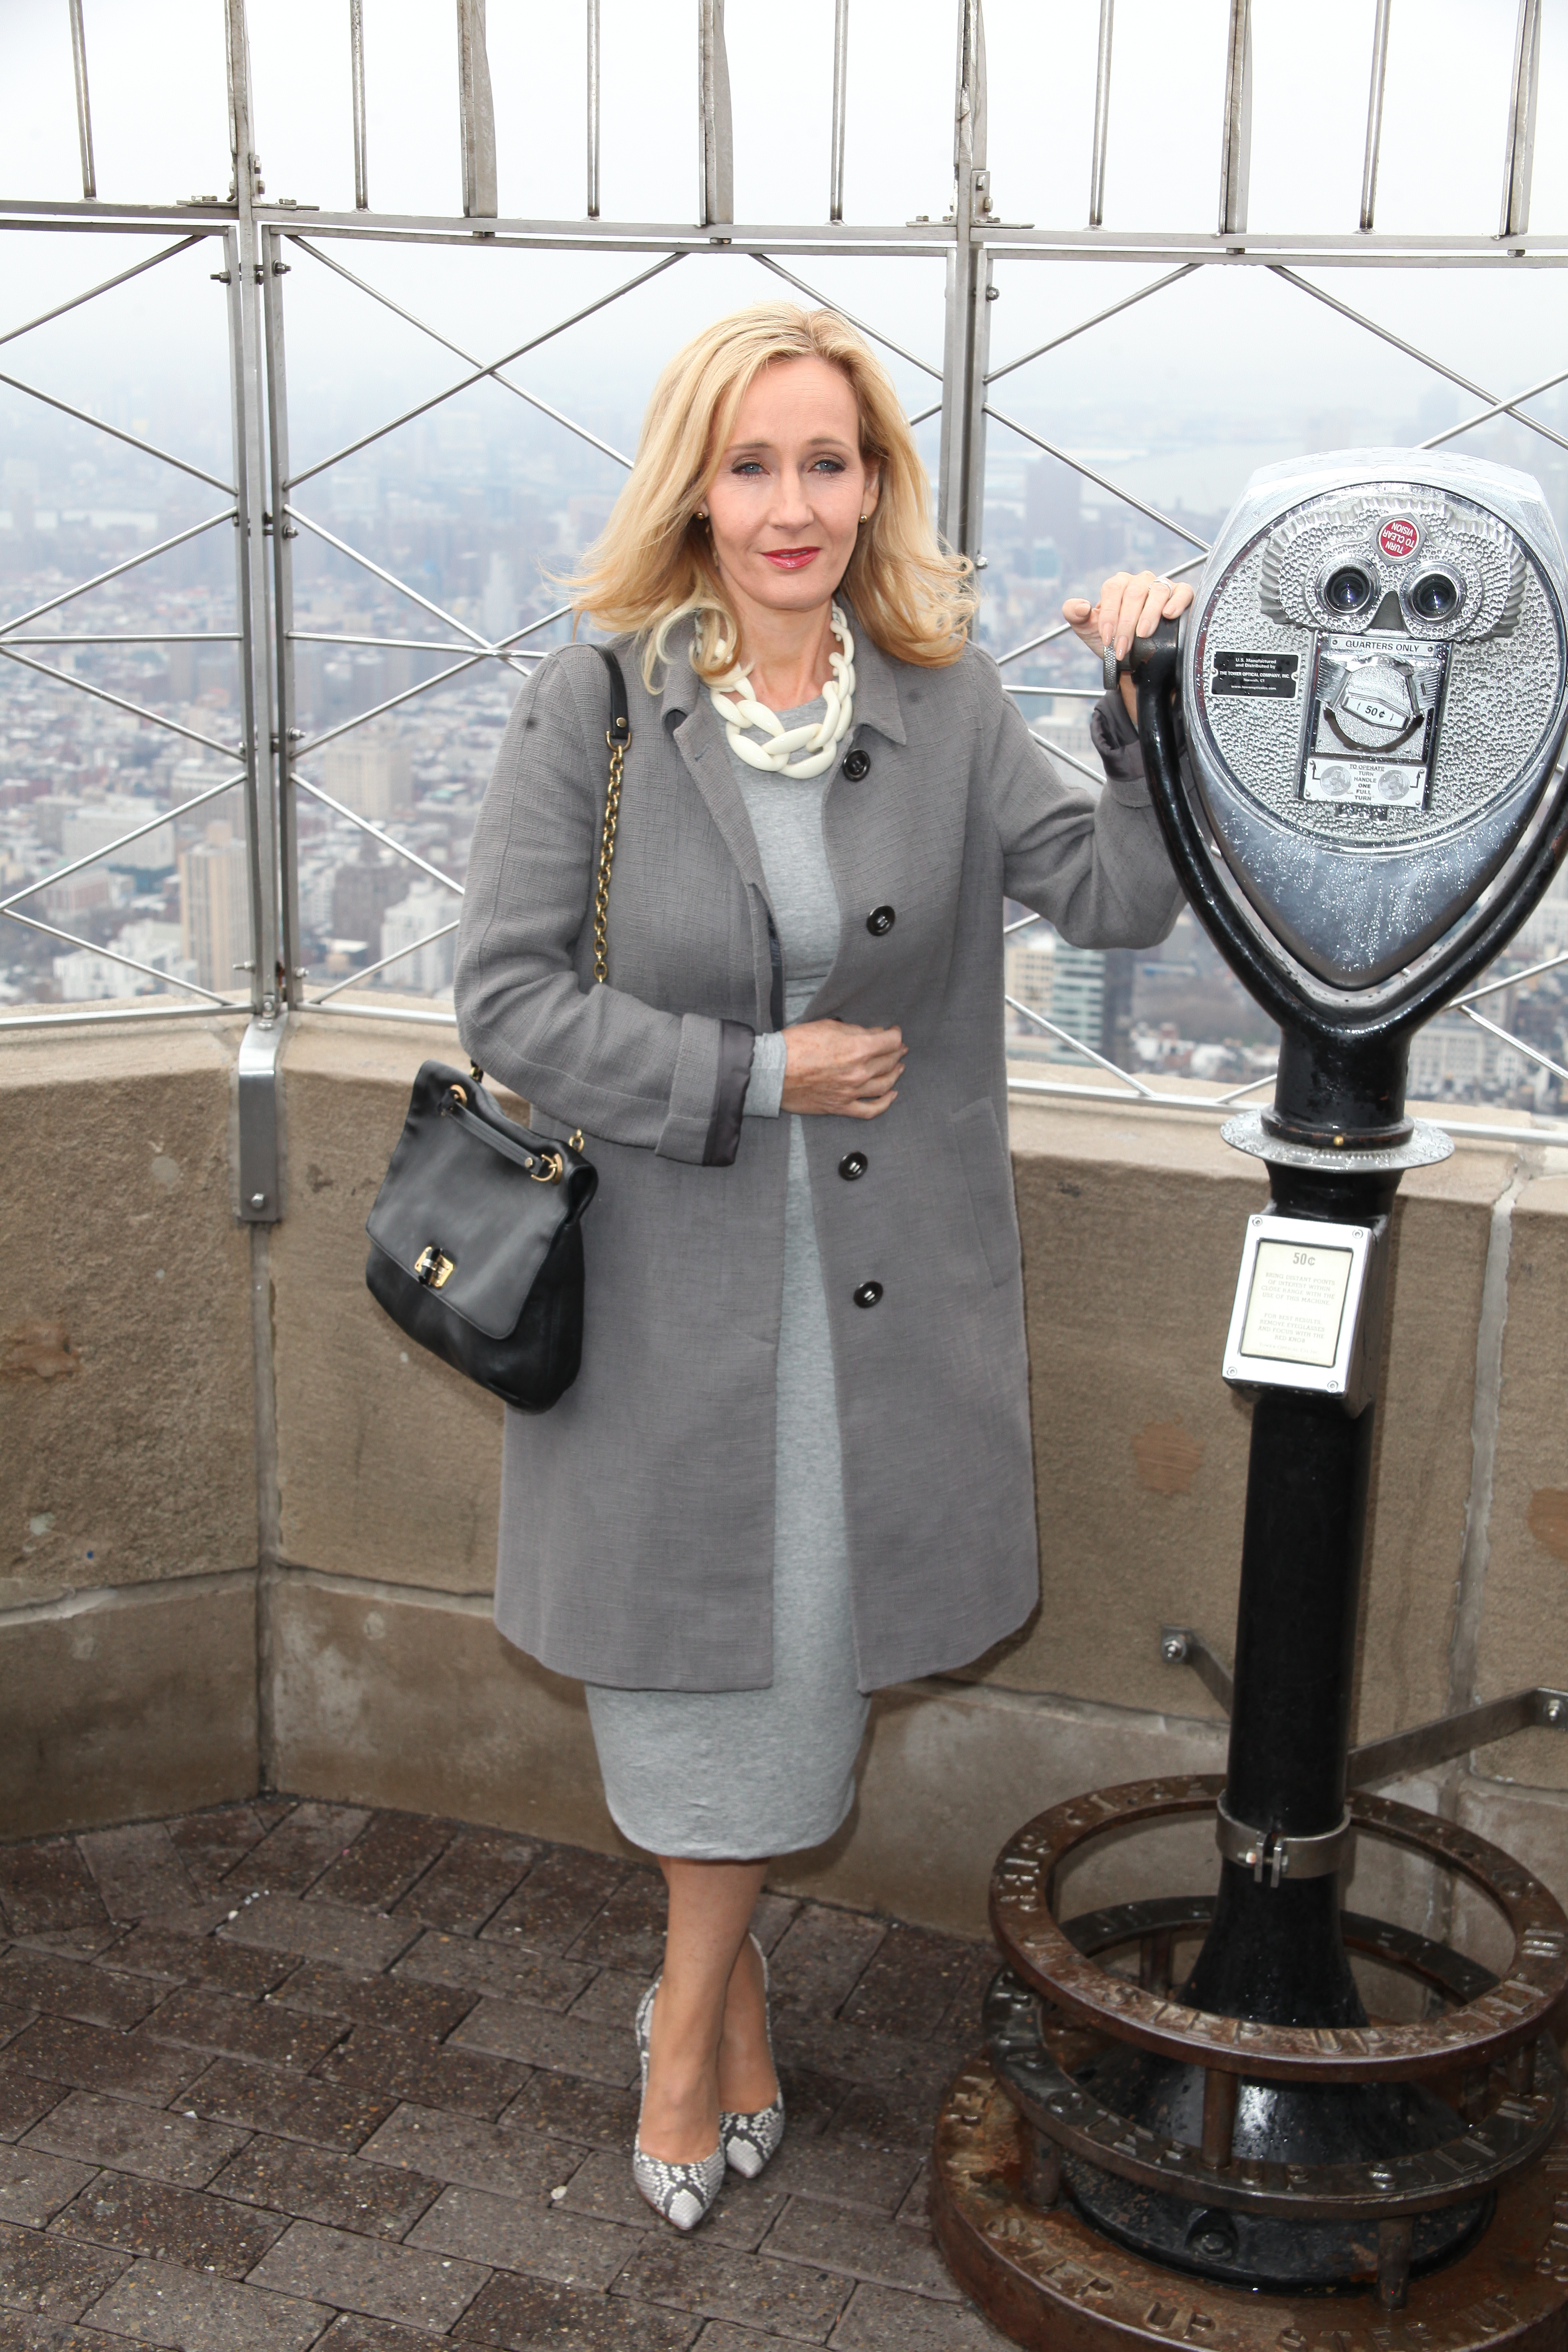 J.K. Rowling illuminates The Empire State Building to mark the USA launch of her non-profit children's organization 'LUMOS' at the Empire State Building in New York City  Featuring: J.K. Rowling Where: NYC, New York, United States When: 09 Apr 2015 Credit: PNP/WENN.com